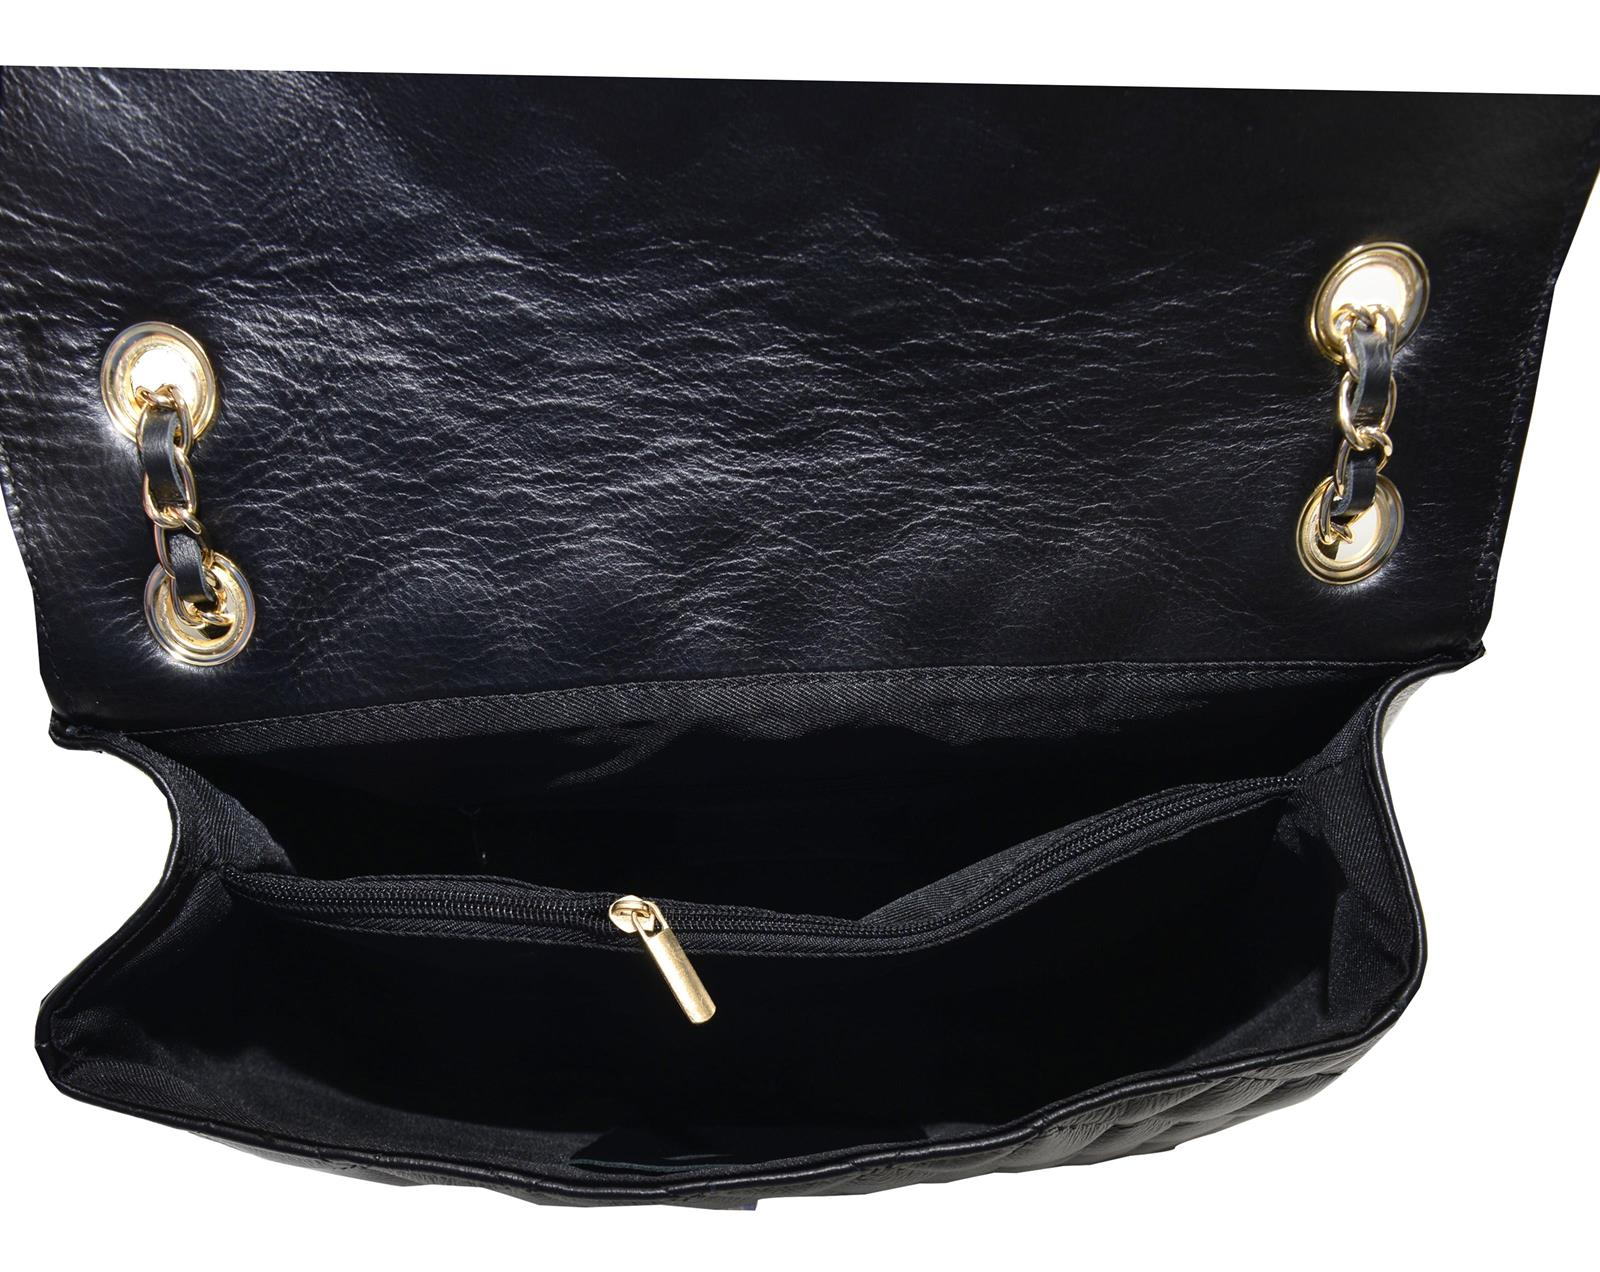 322cb367f7 30-BAG-114 (BLACK) 4